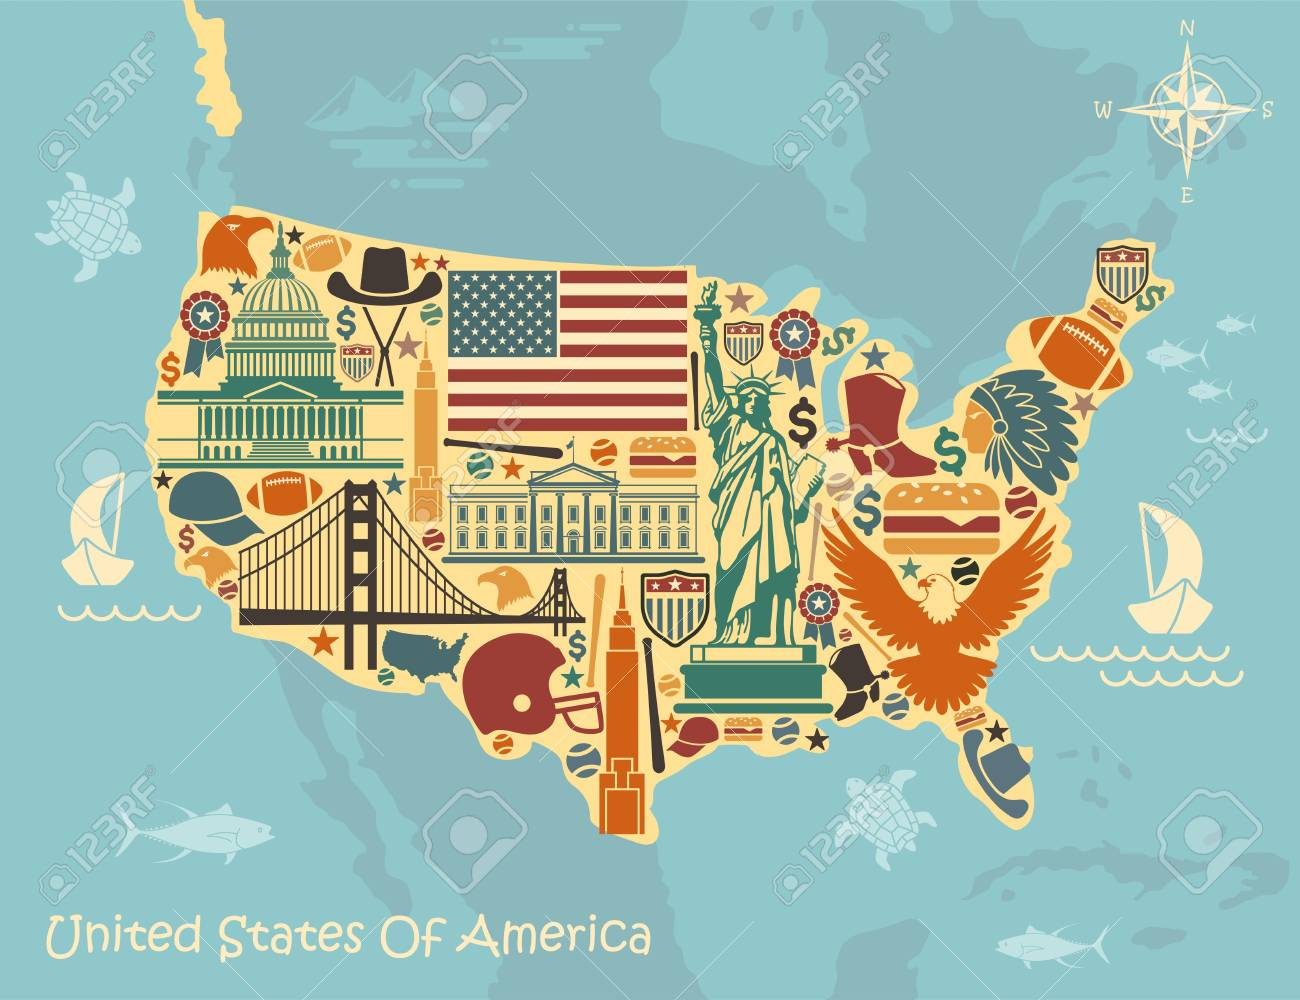 Stylized map of the United States with American symbols on map of africa, map of canada, map of bermuda, map of virginia, map of the continents, map of the northeast, map of guam, map of czech republic, map of the bahamas, map of the world, map of china, map of south carolina, map of the us states, map of the country, map of europe, map of the caribbean, map of california, map of florida, map of the great lakes, map of the oceans, map of the earth, map of the philippines, map of north carolina, map of washington, map of texas, map of new york, map of mexico, map of the mason dixon line, map of south america, map of america, map of us, map of italy, map of usa, map of the states and capitals, map of georgia, map of ohio, map of the east coast, map of germany,